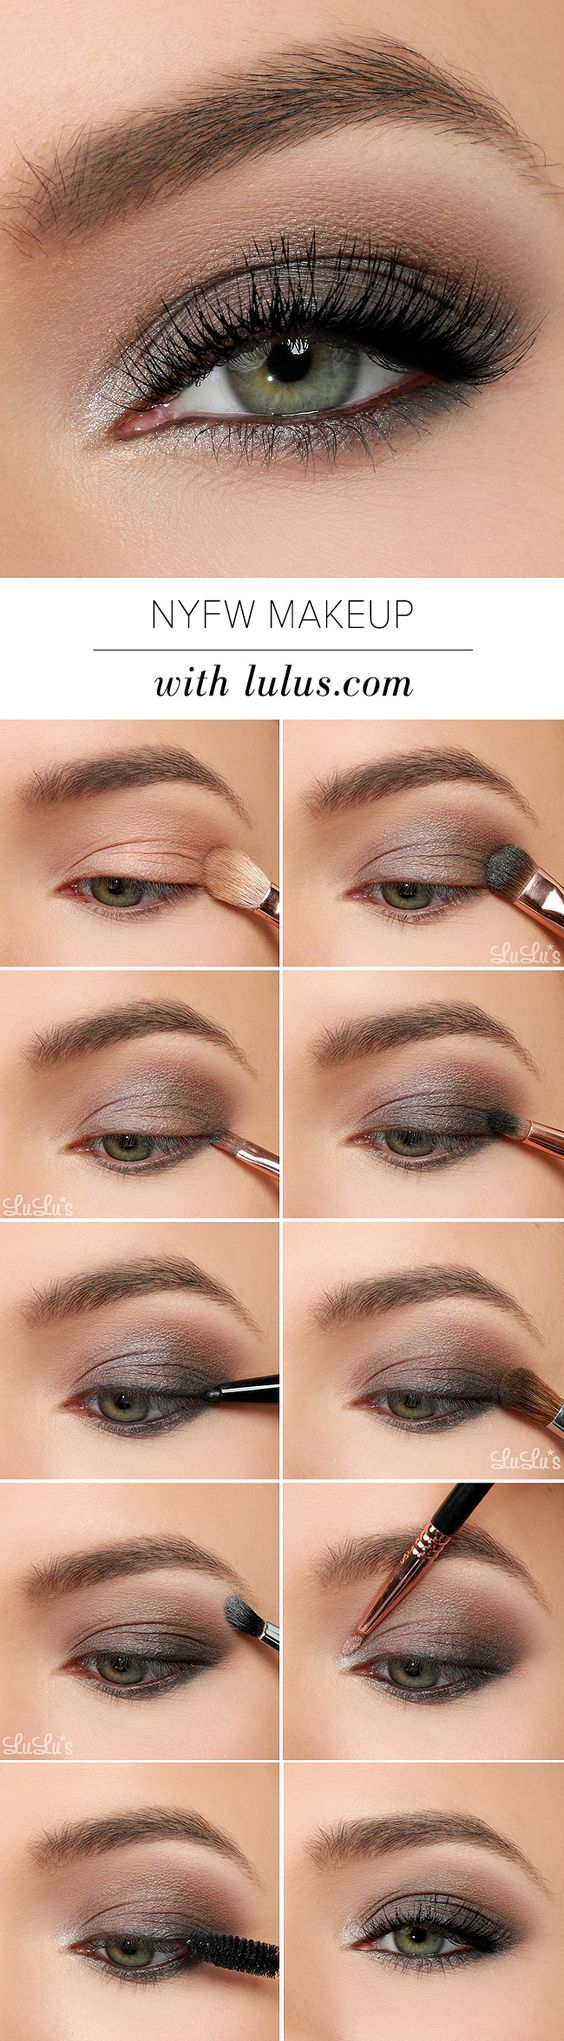 15 easy step by step smokey eye makeup tutorials for